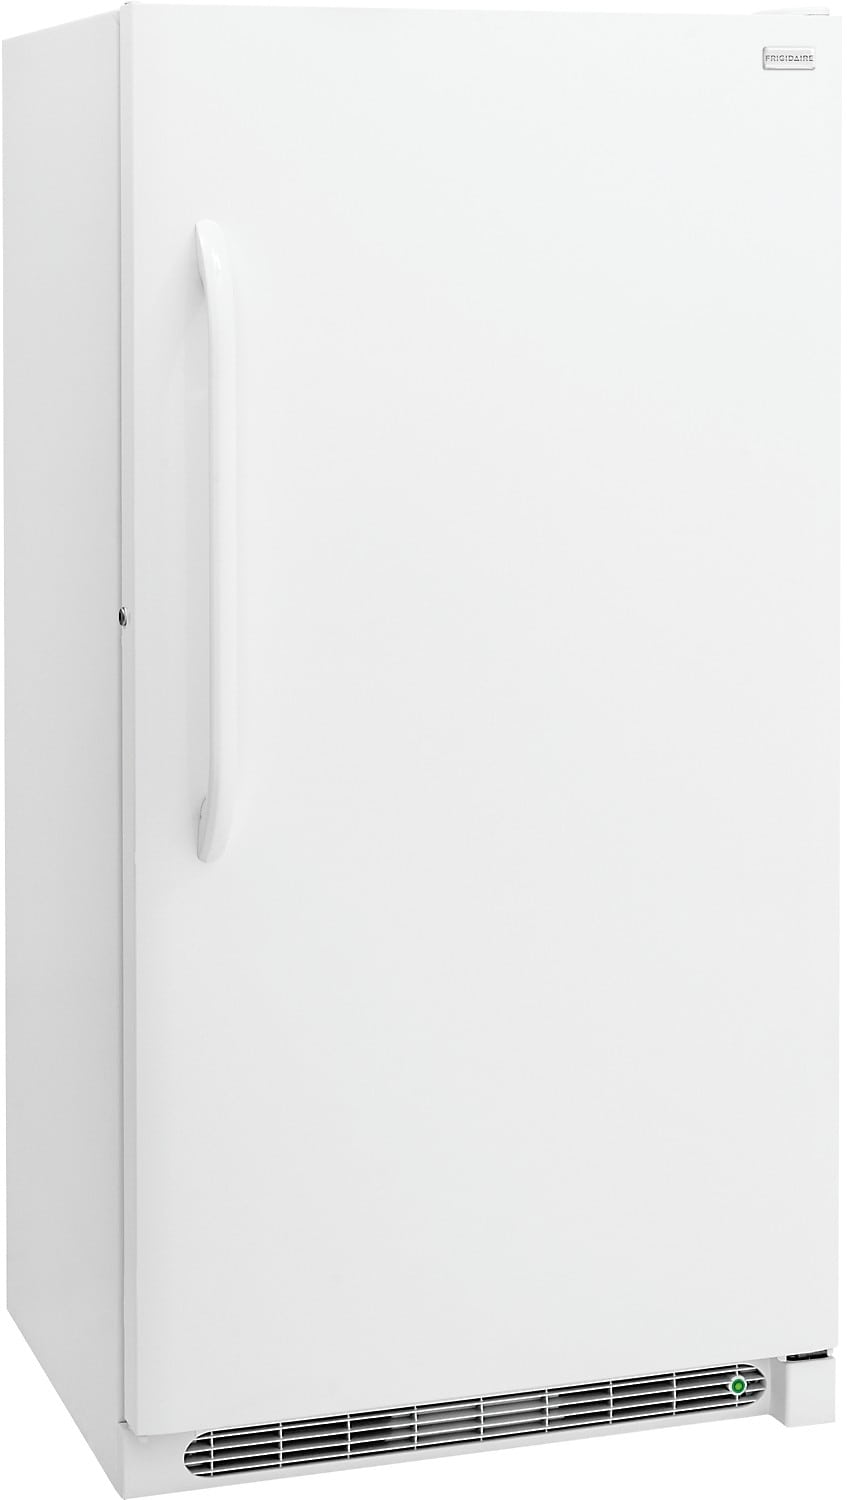 Frigidaire 20.9 Cu. Ft. Upright Freezer - White